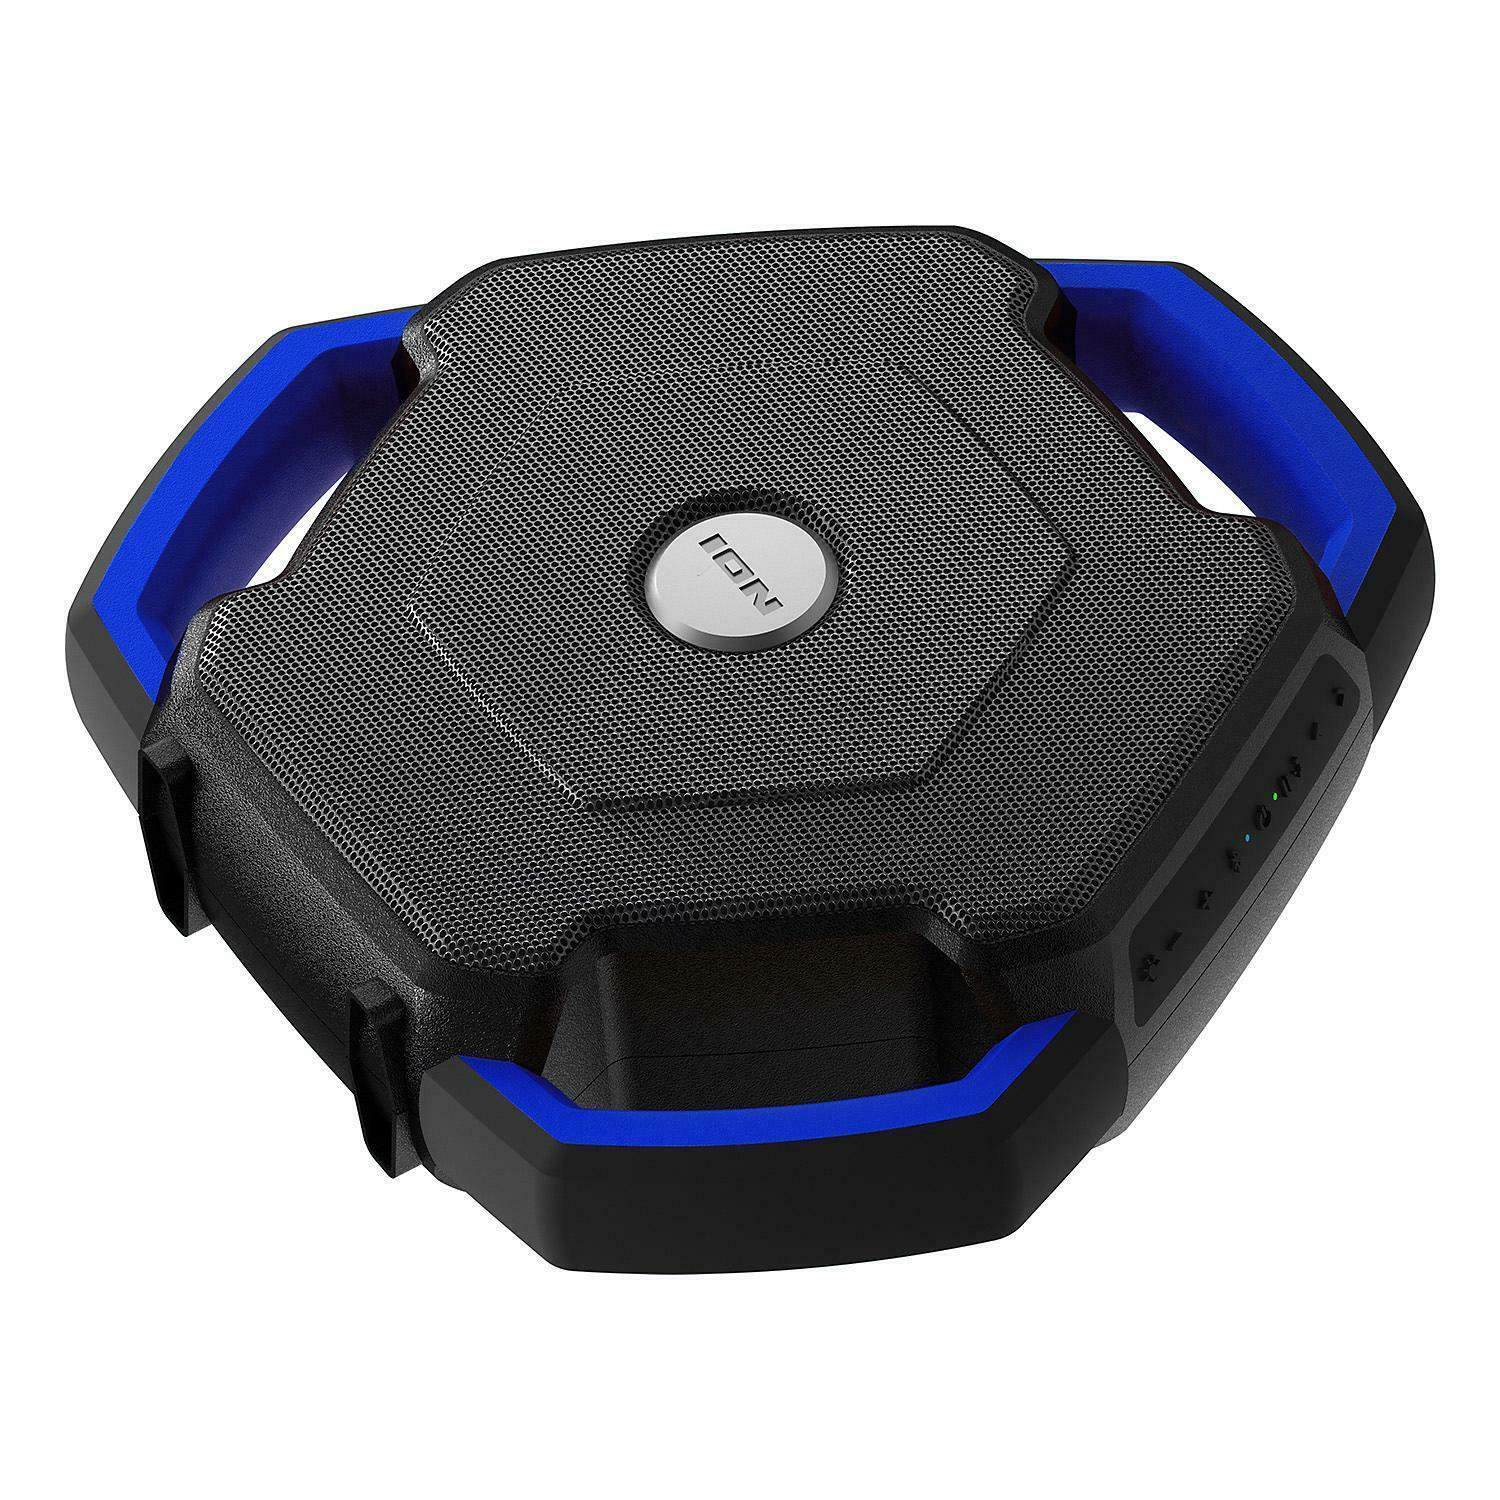 Ion Audio WaveRider Waterproof Bluetooth Wireless Speaker FM Radio Pool Boombox